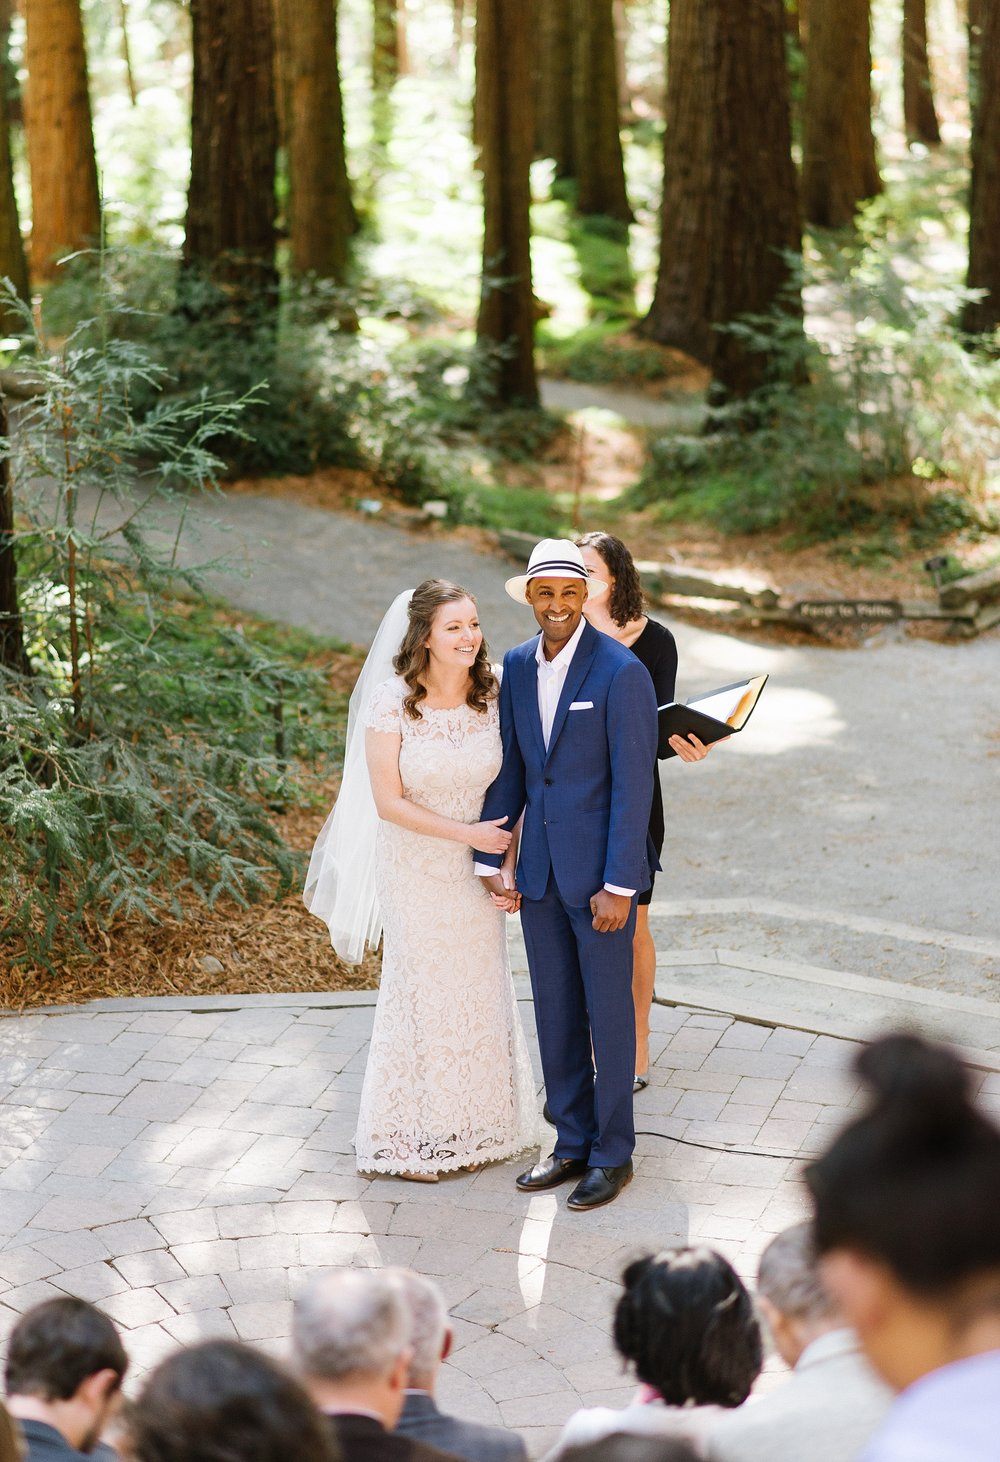 ucberkeley_botanical_redwoods_outdoor_wedding_jennyrez_cdp_0043.jpg